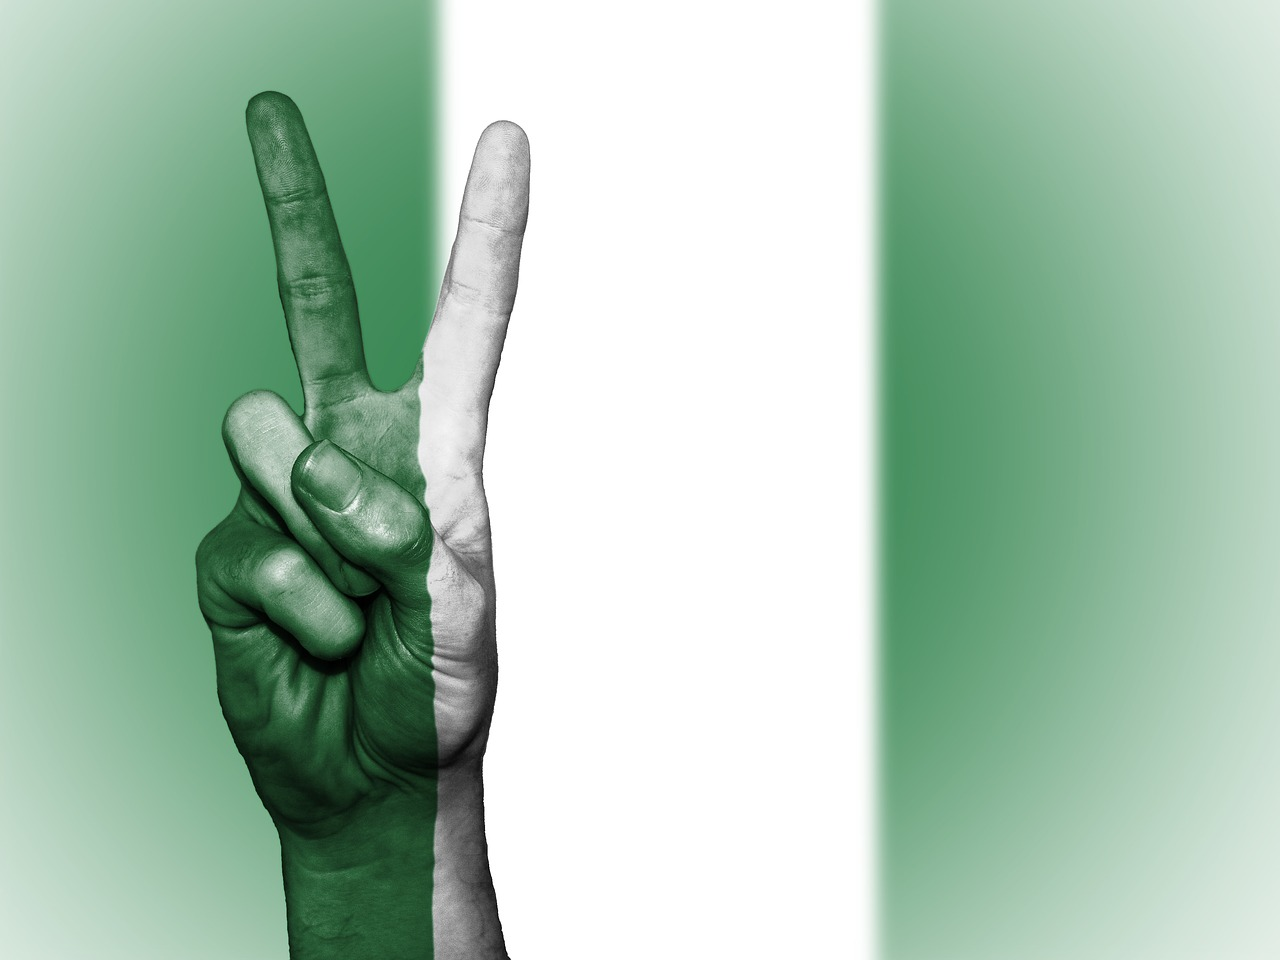 nigeria peace hand free photo